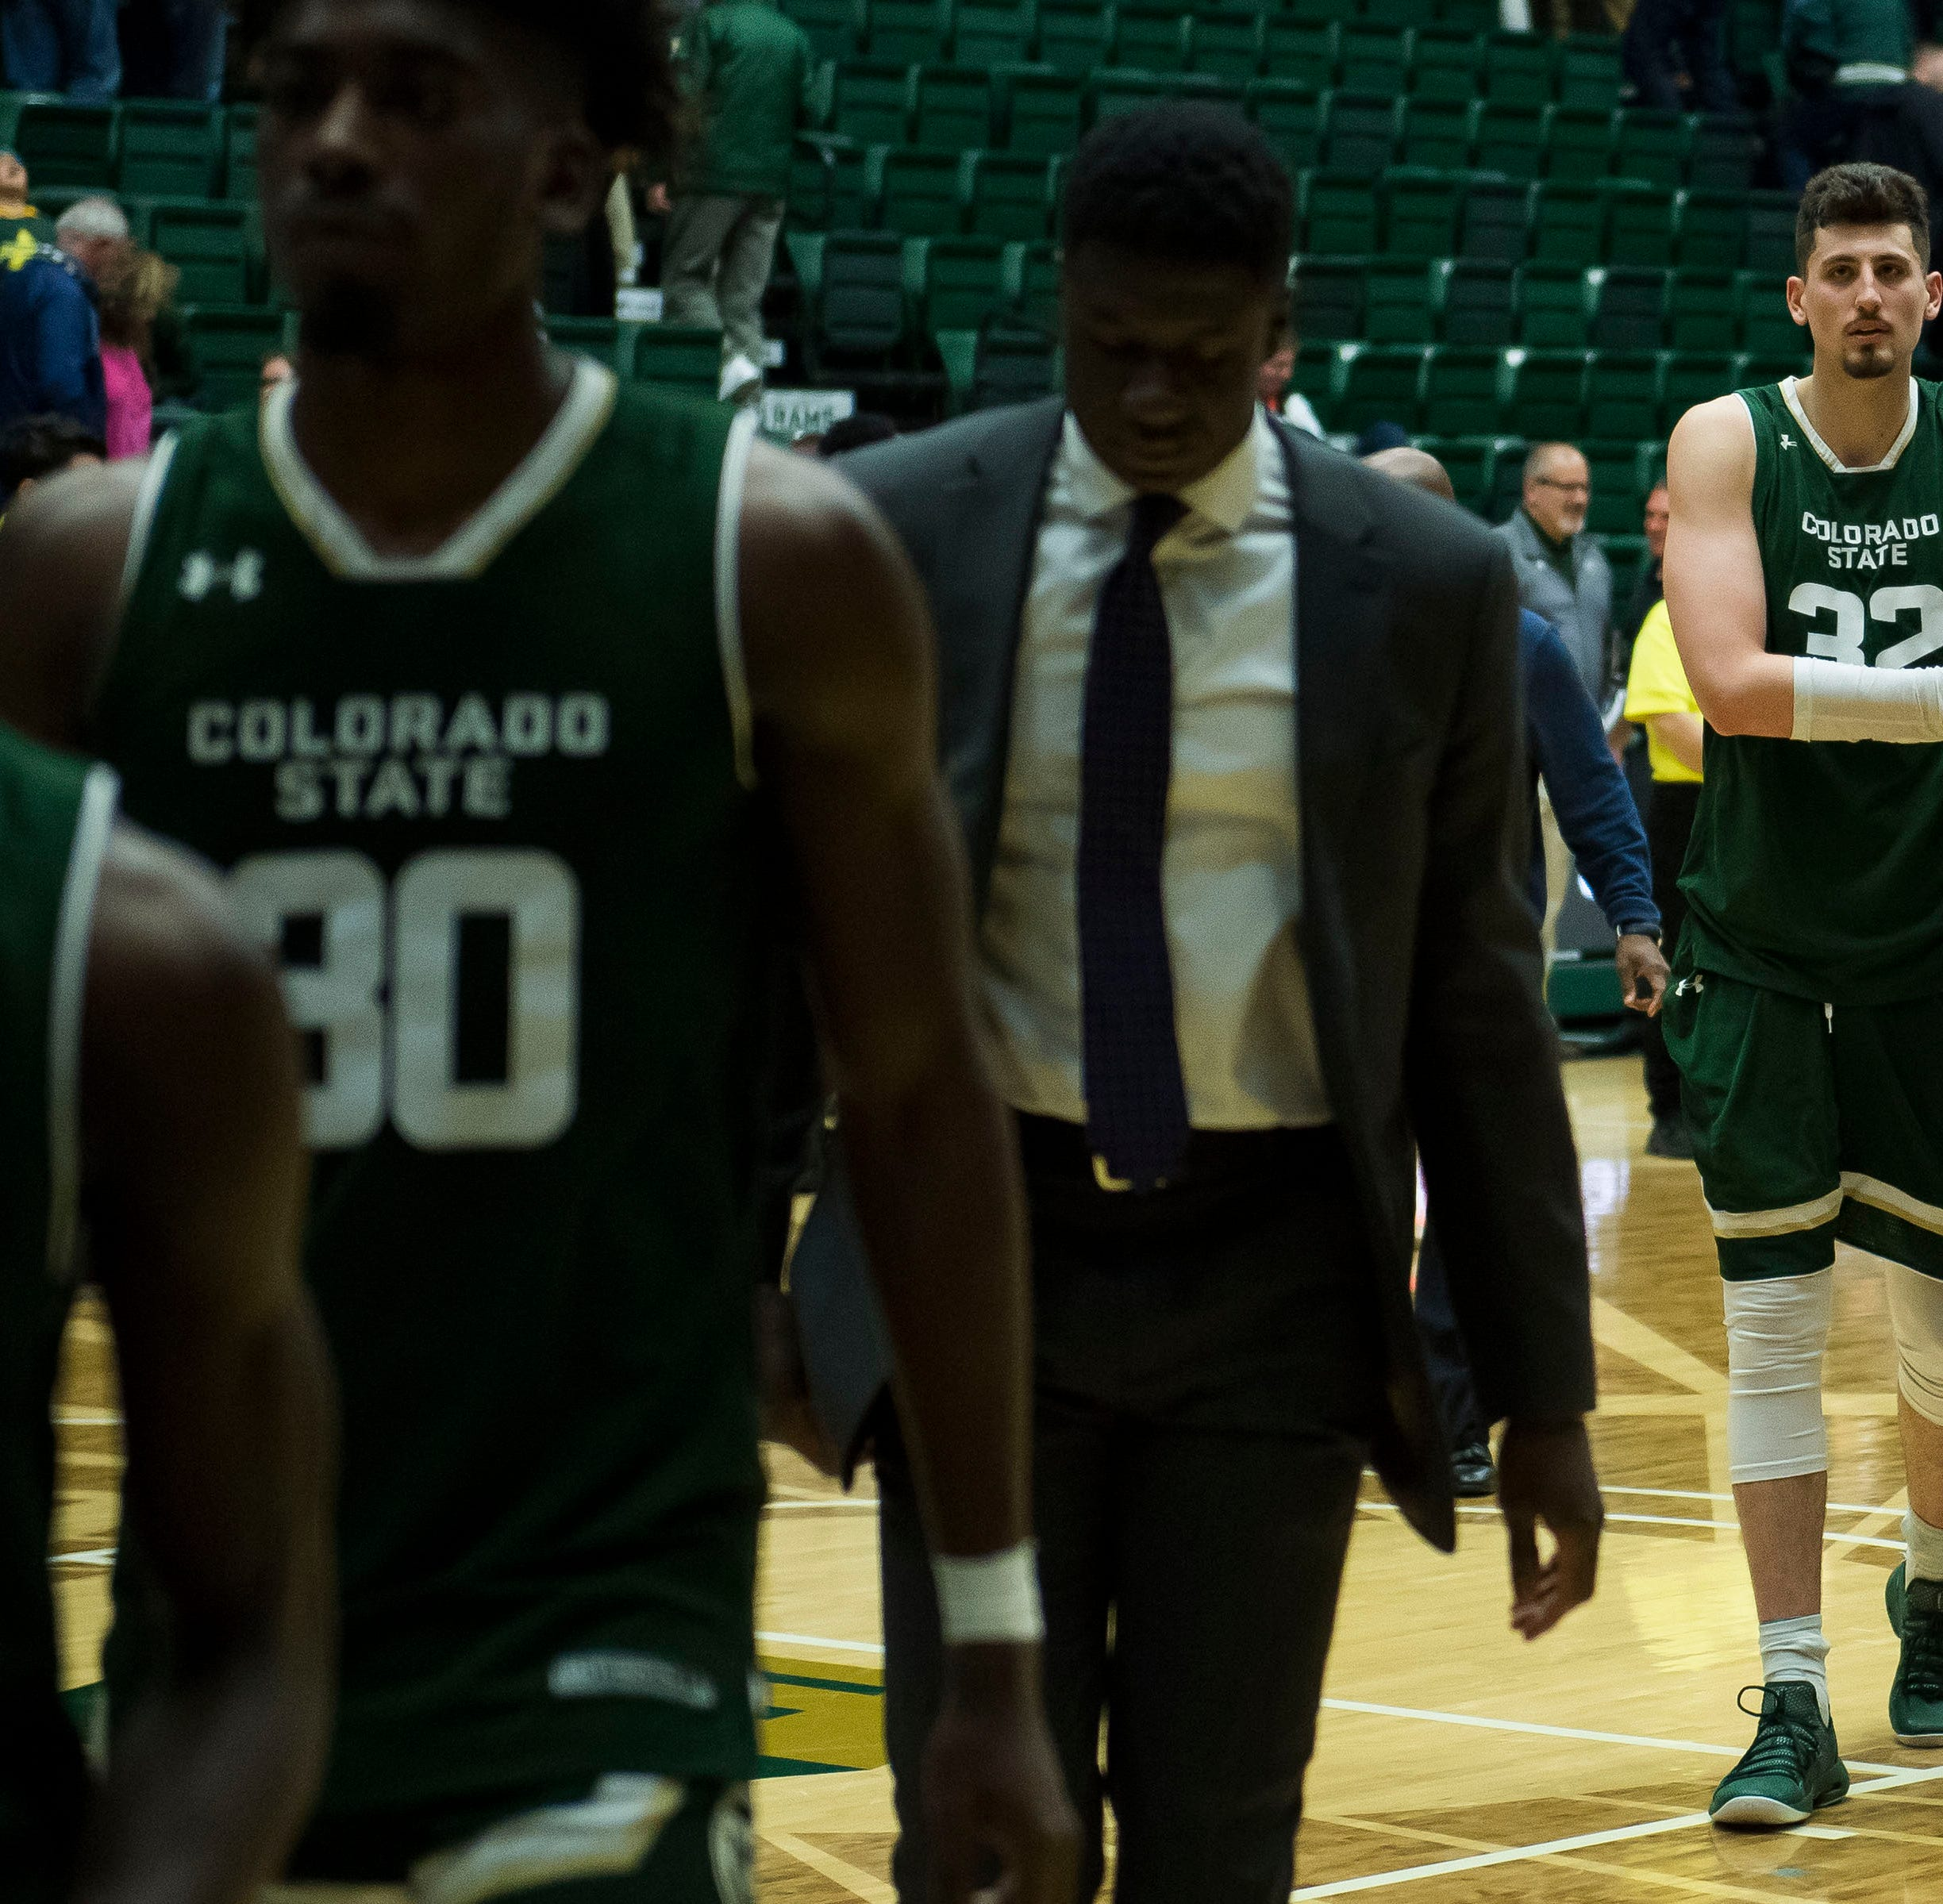 Takeaways from Colorado State basketball's late loss to UNLV